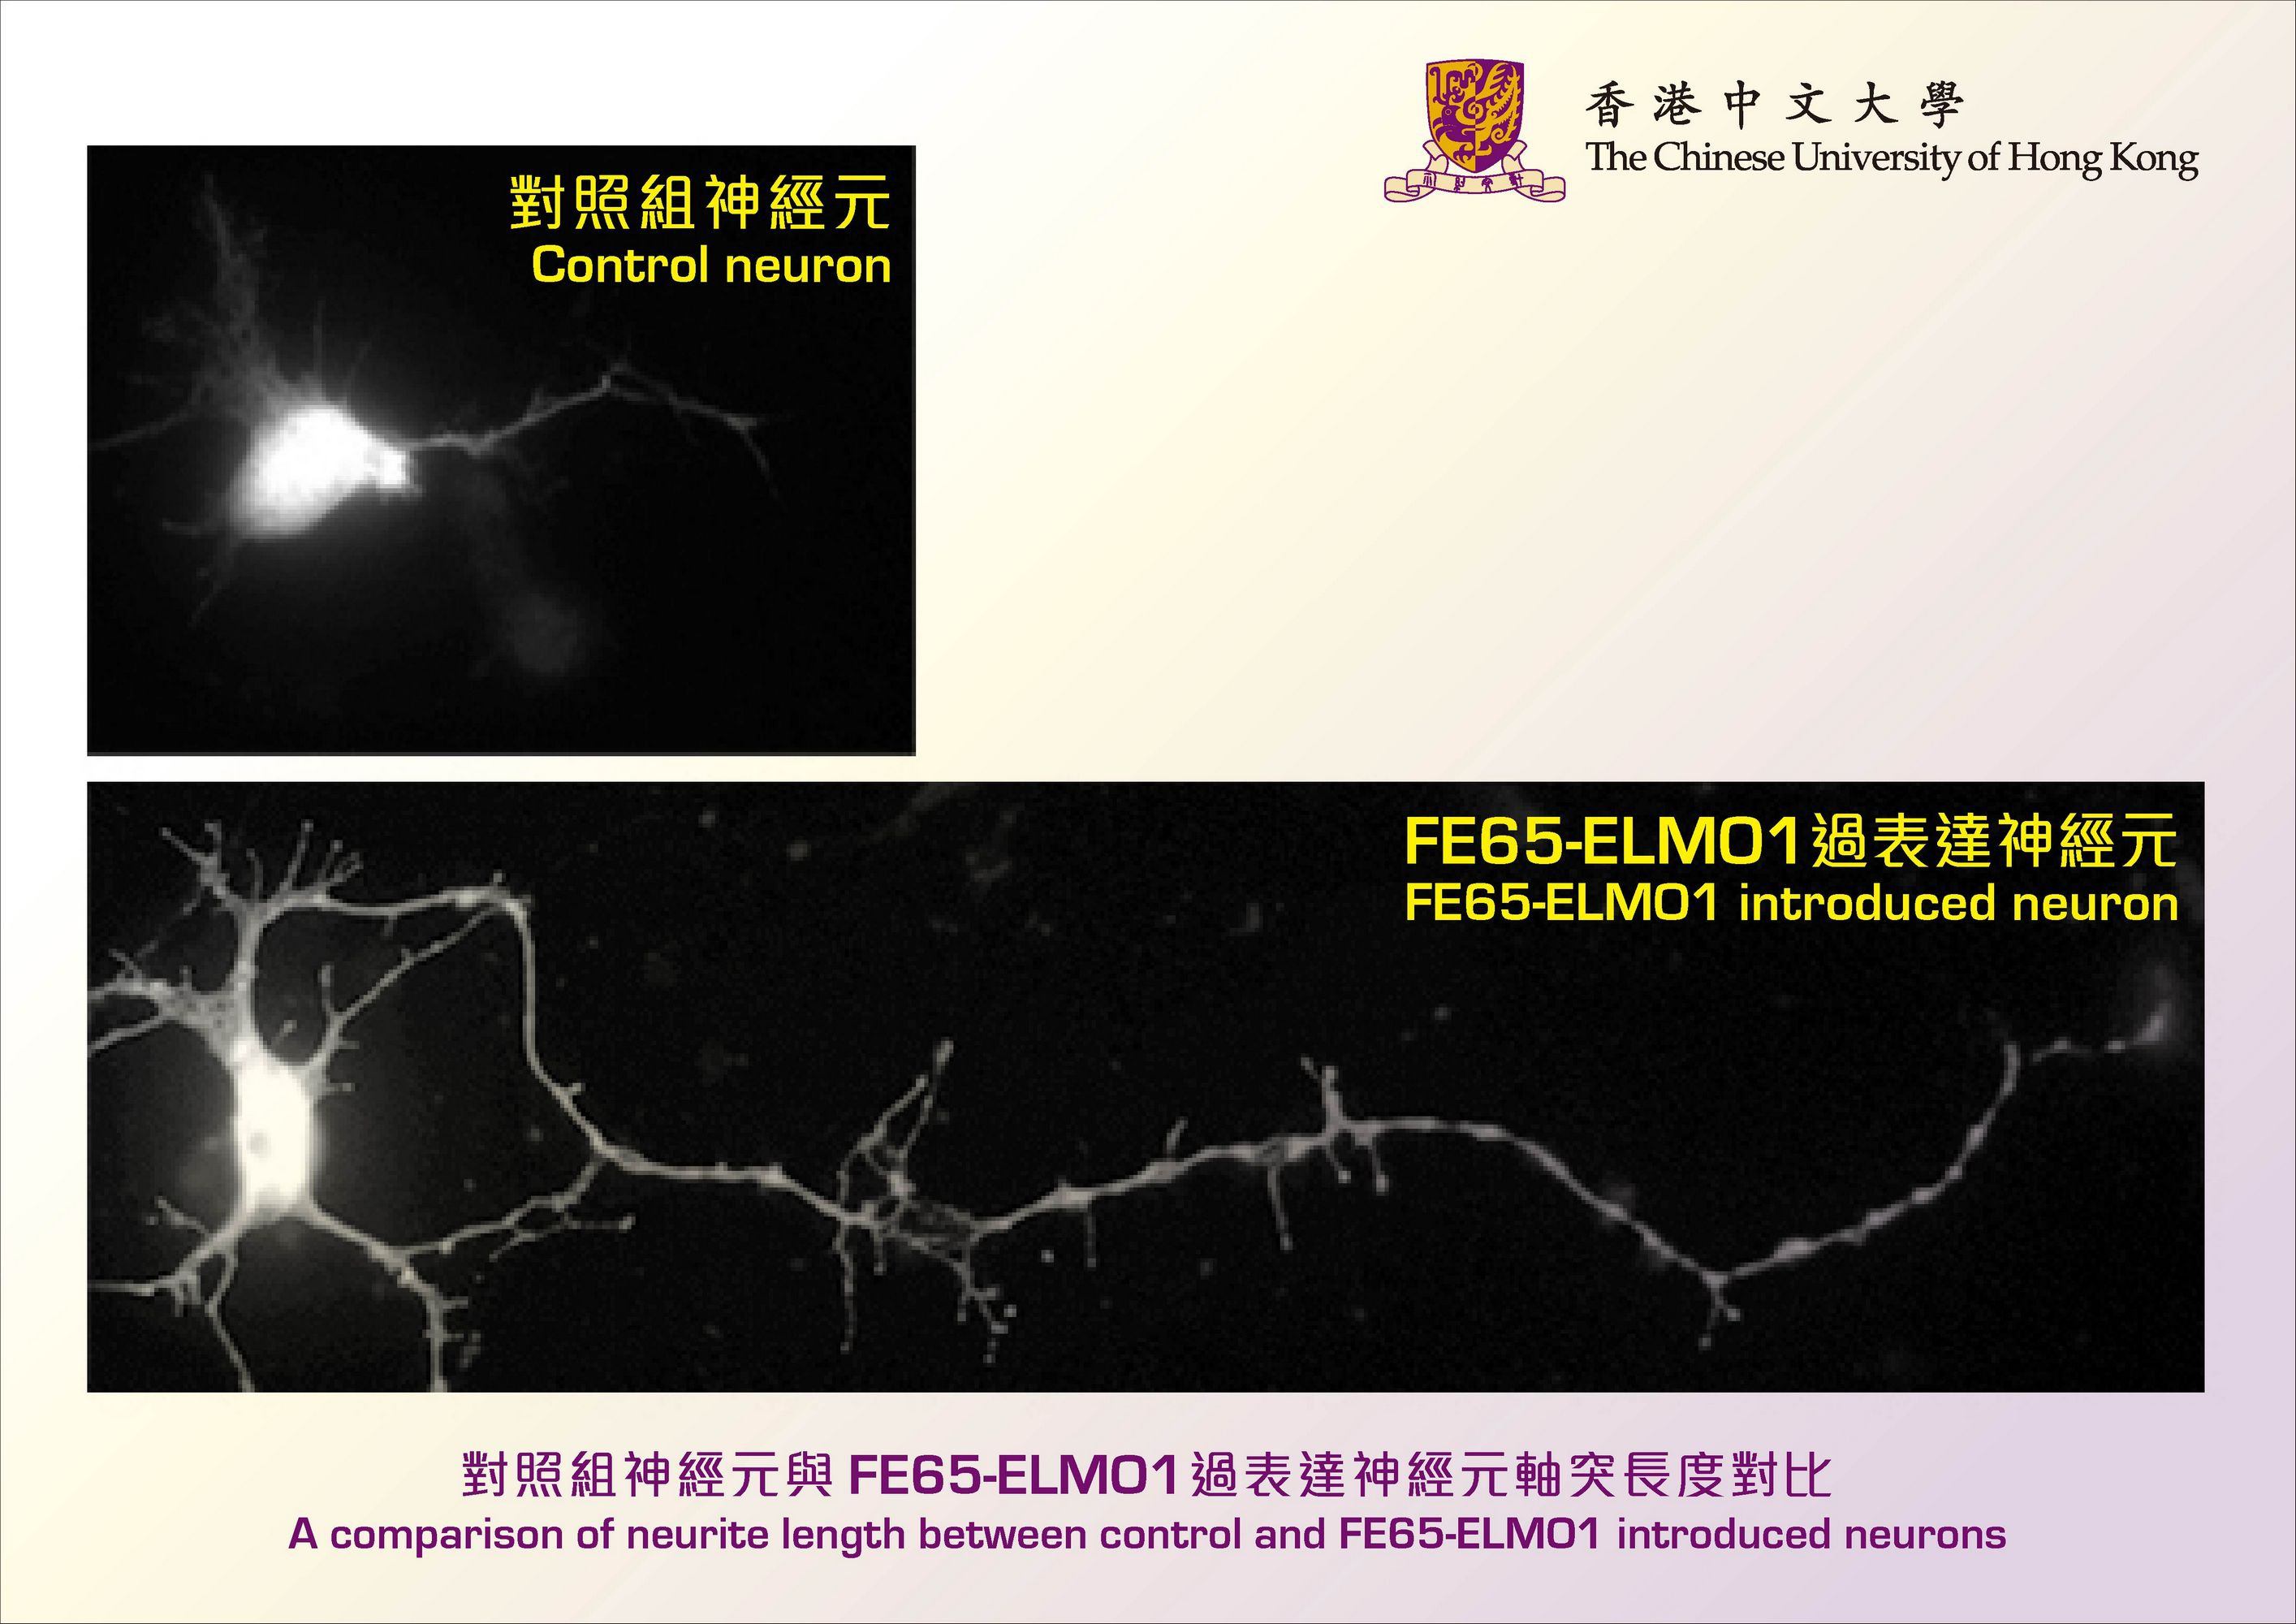 A comparison of neurite length between control and FE65-ELMO1 introduced neurons